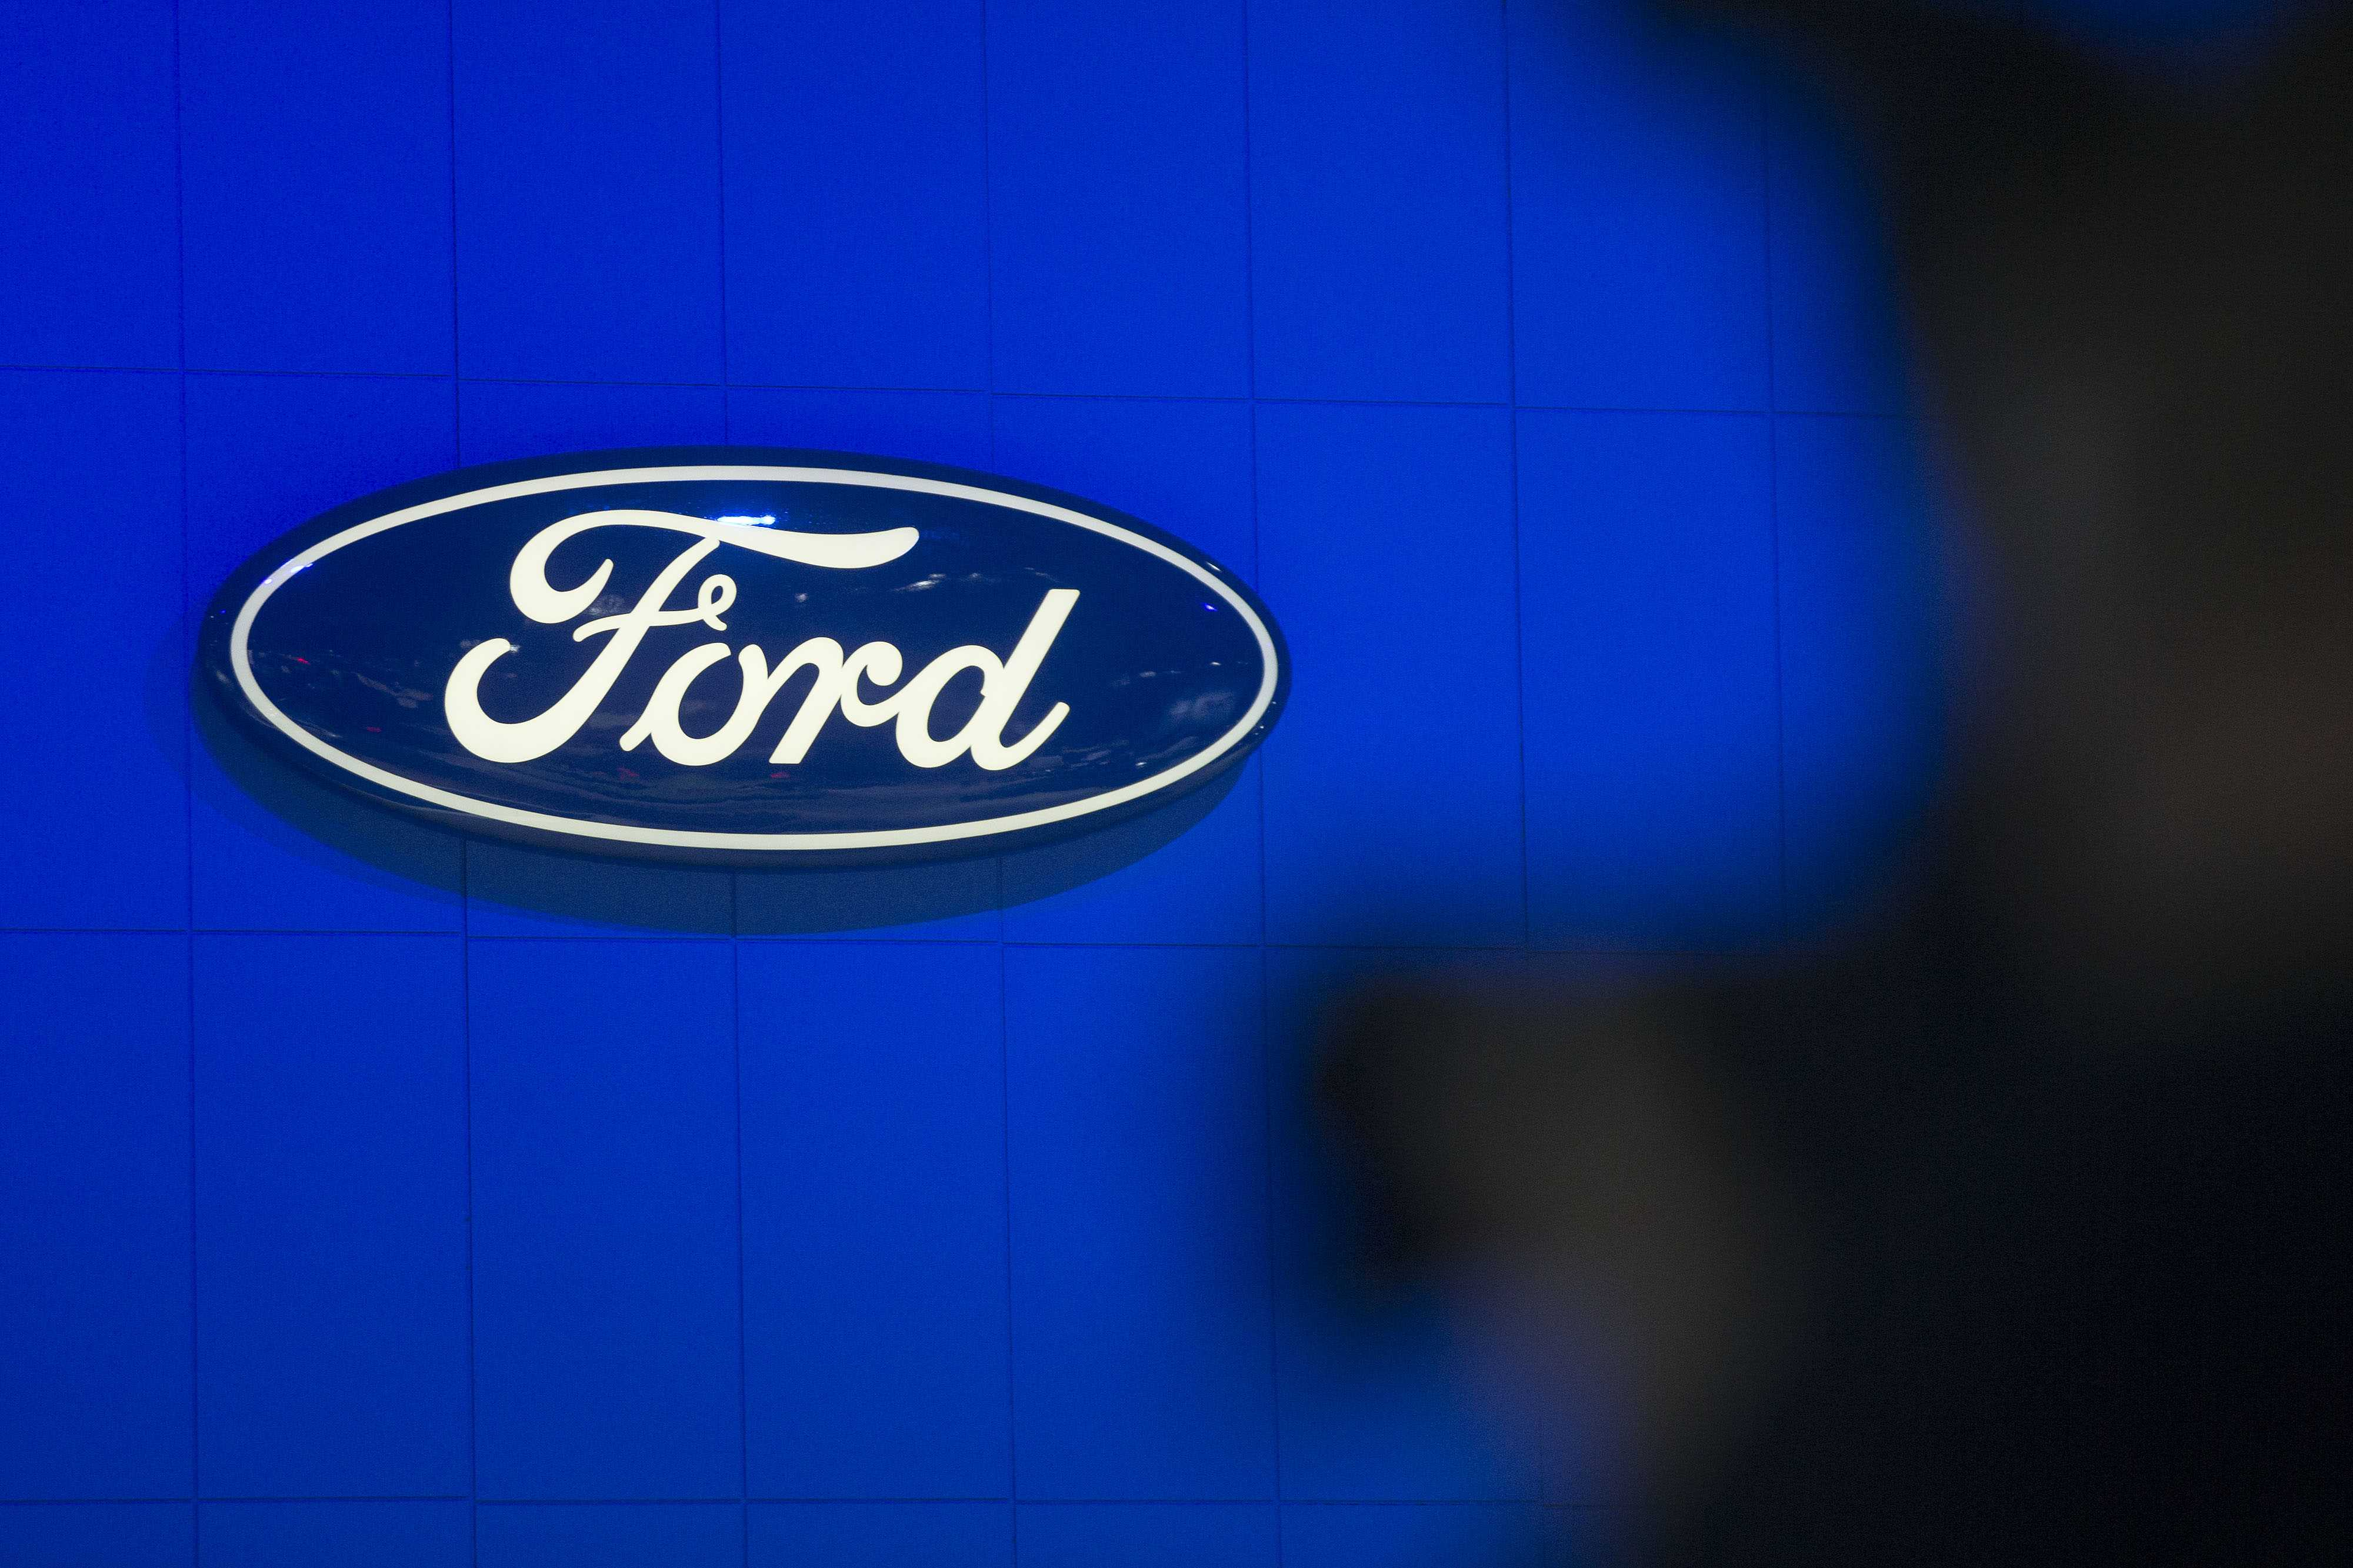 Ford 39 S U S Pension Plans Over 95 Funded At End Of 2013